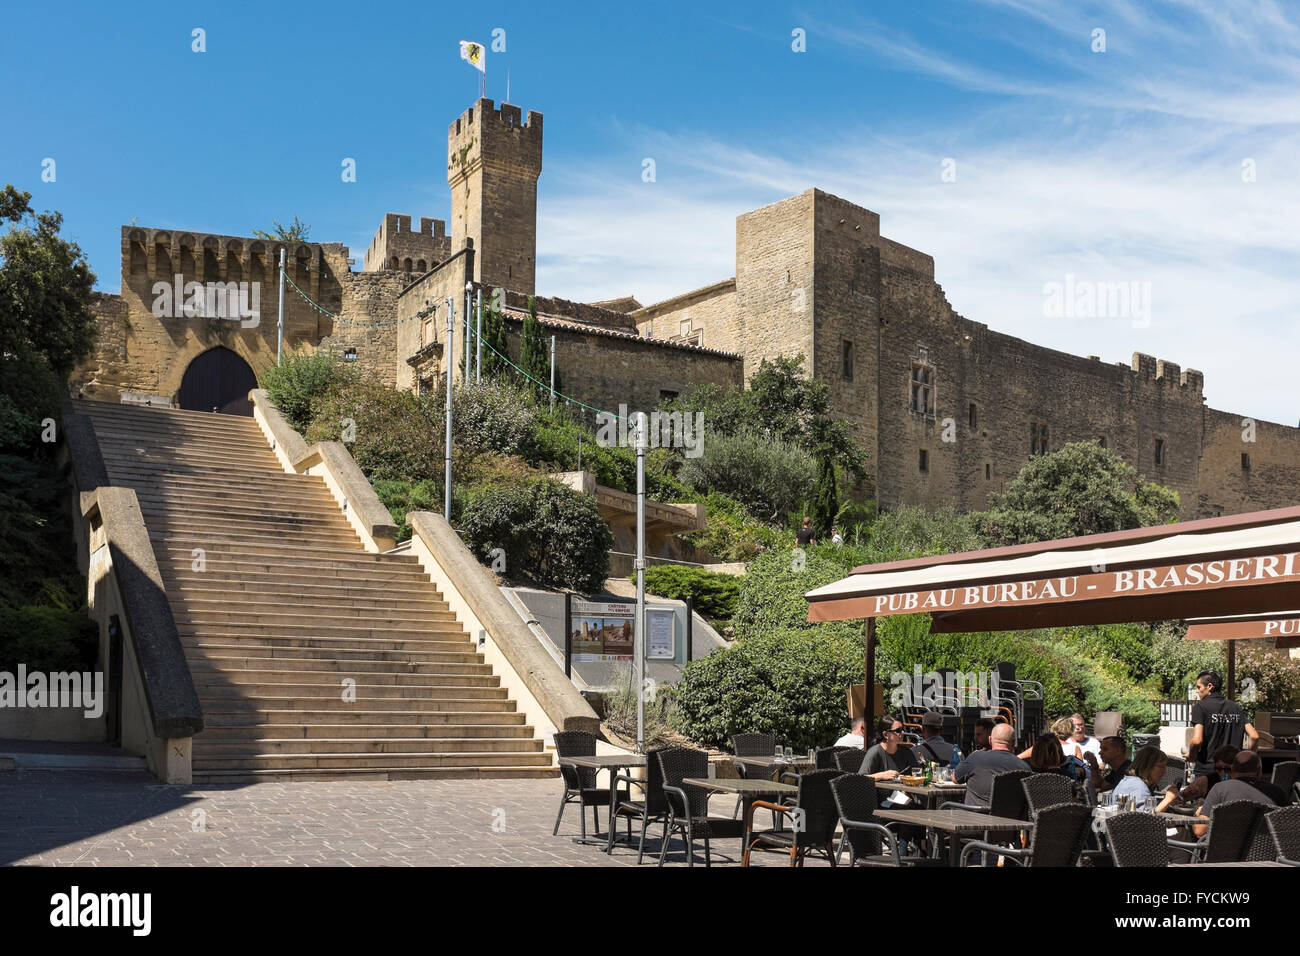 9c castle ch teau de l 39 emperi salon de provence bouches du rh ne stock photo royalty free - Salon de provence departement ...